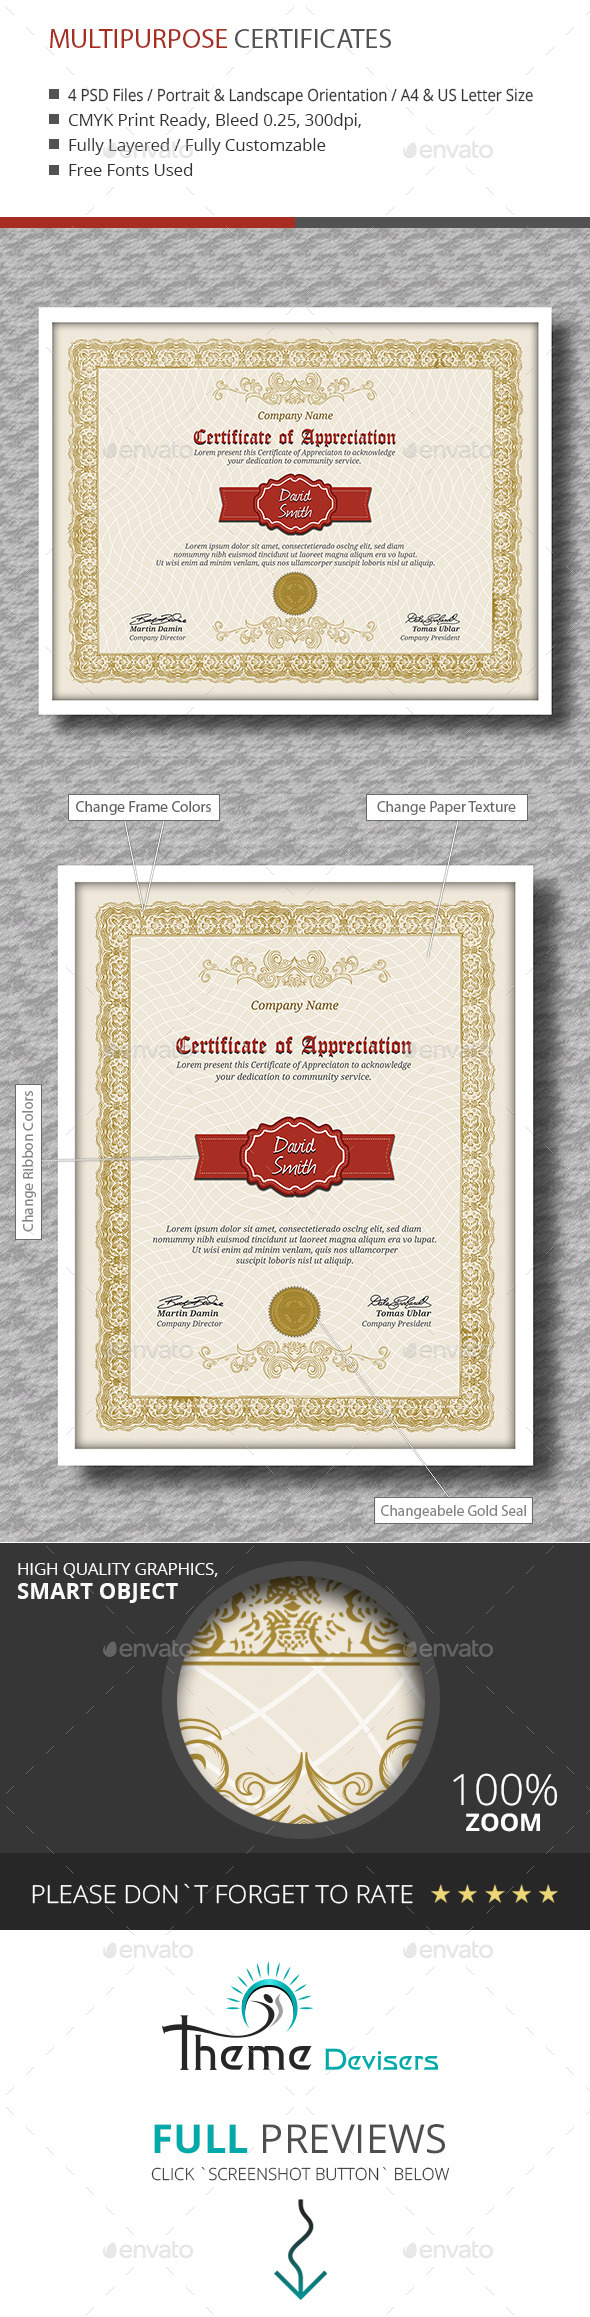 Certificate Psd Graphics Designs Templates From Graphicriver Page 2